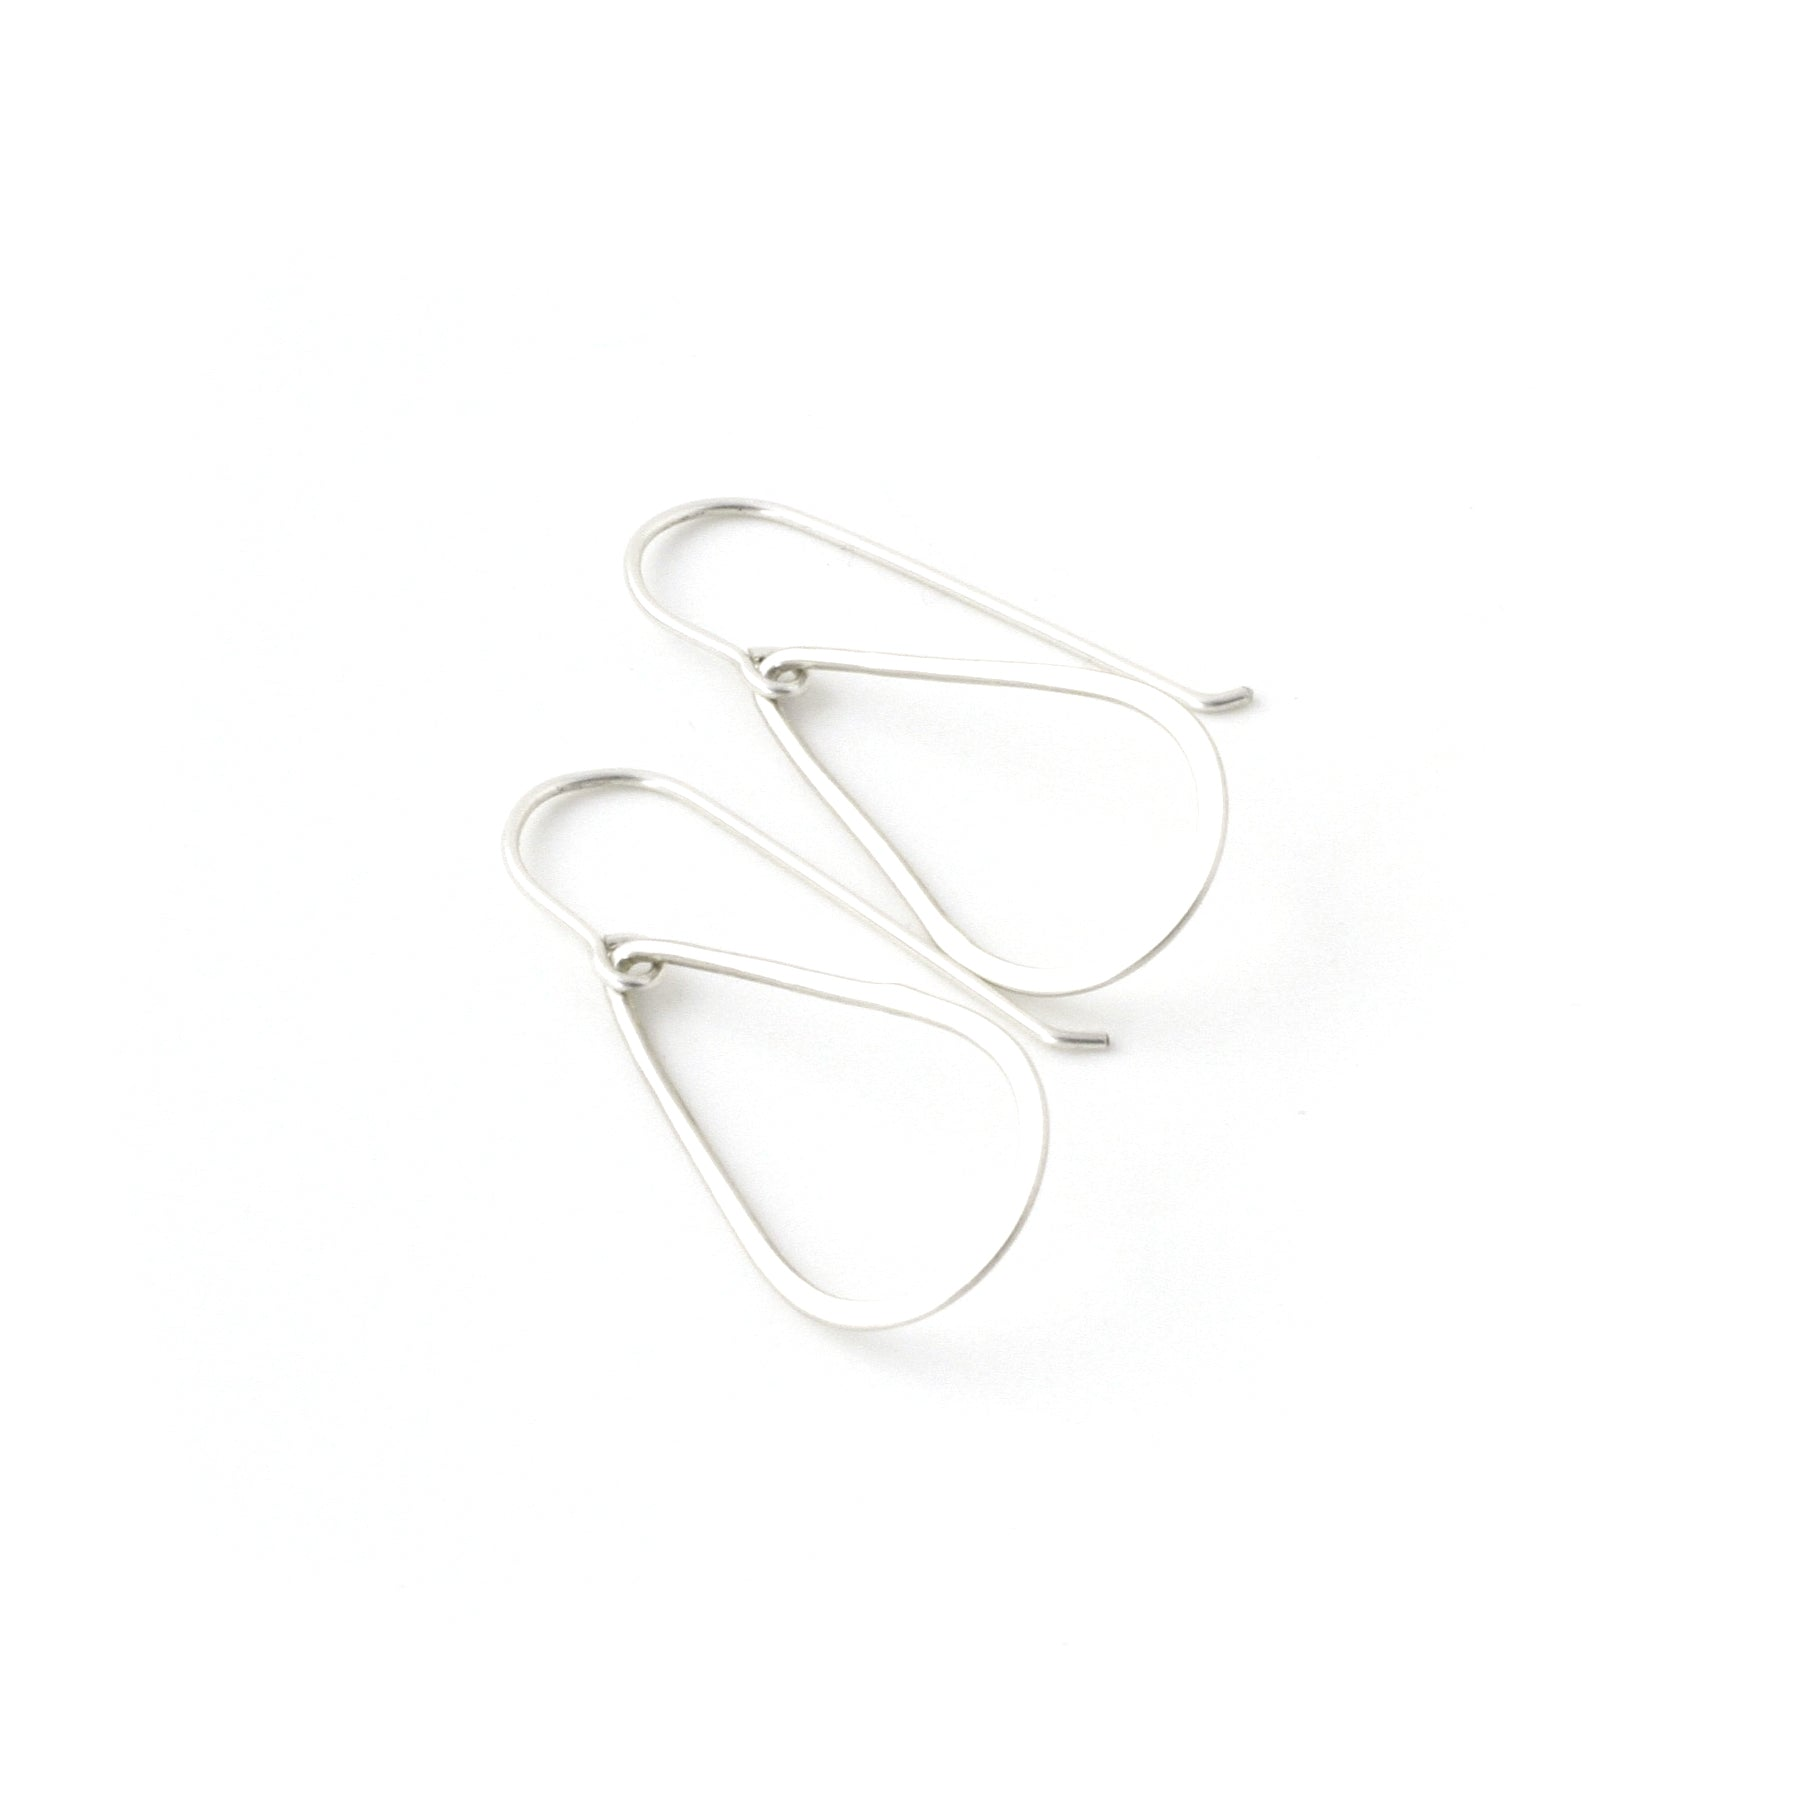 Suspended Earrings (Plain)